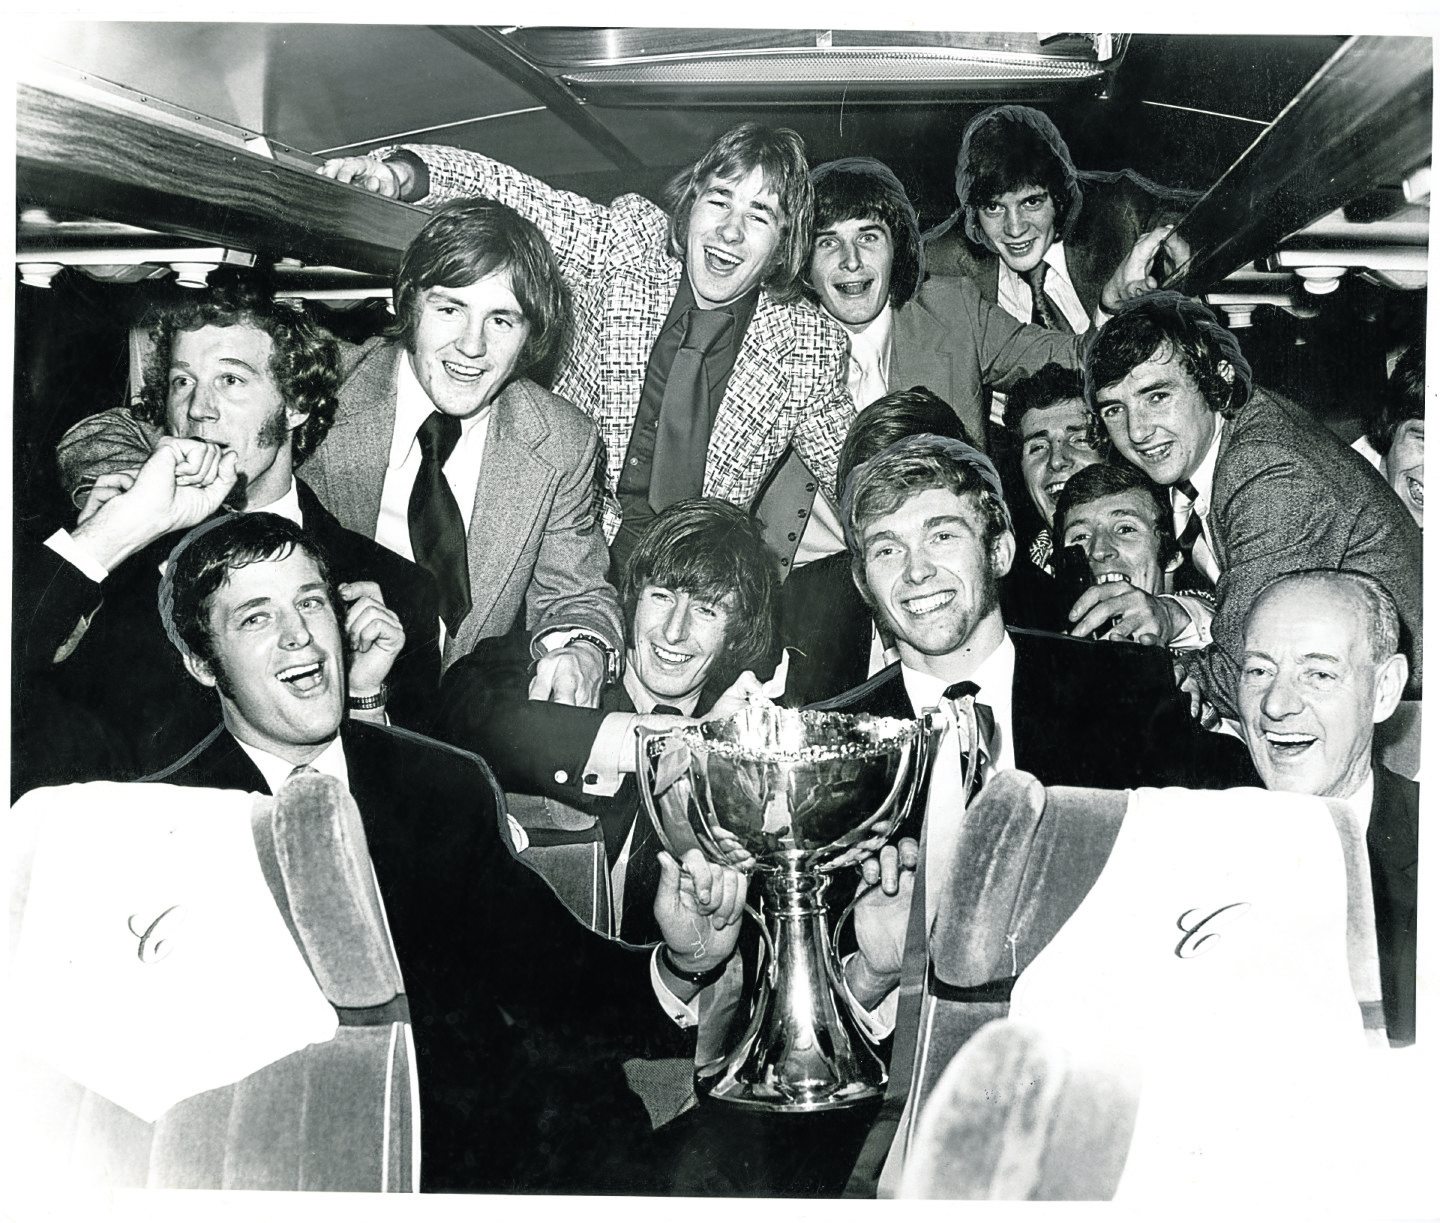 The Partick Thistle players in a happy mood on the bus after their win, with Alan Rough pictured at the back on the left.